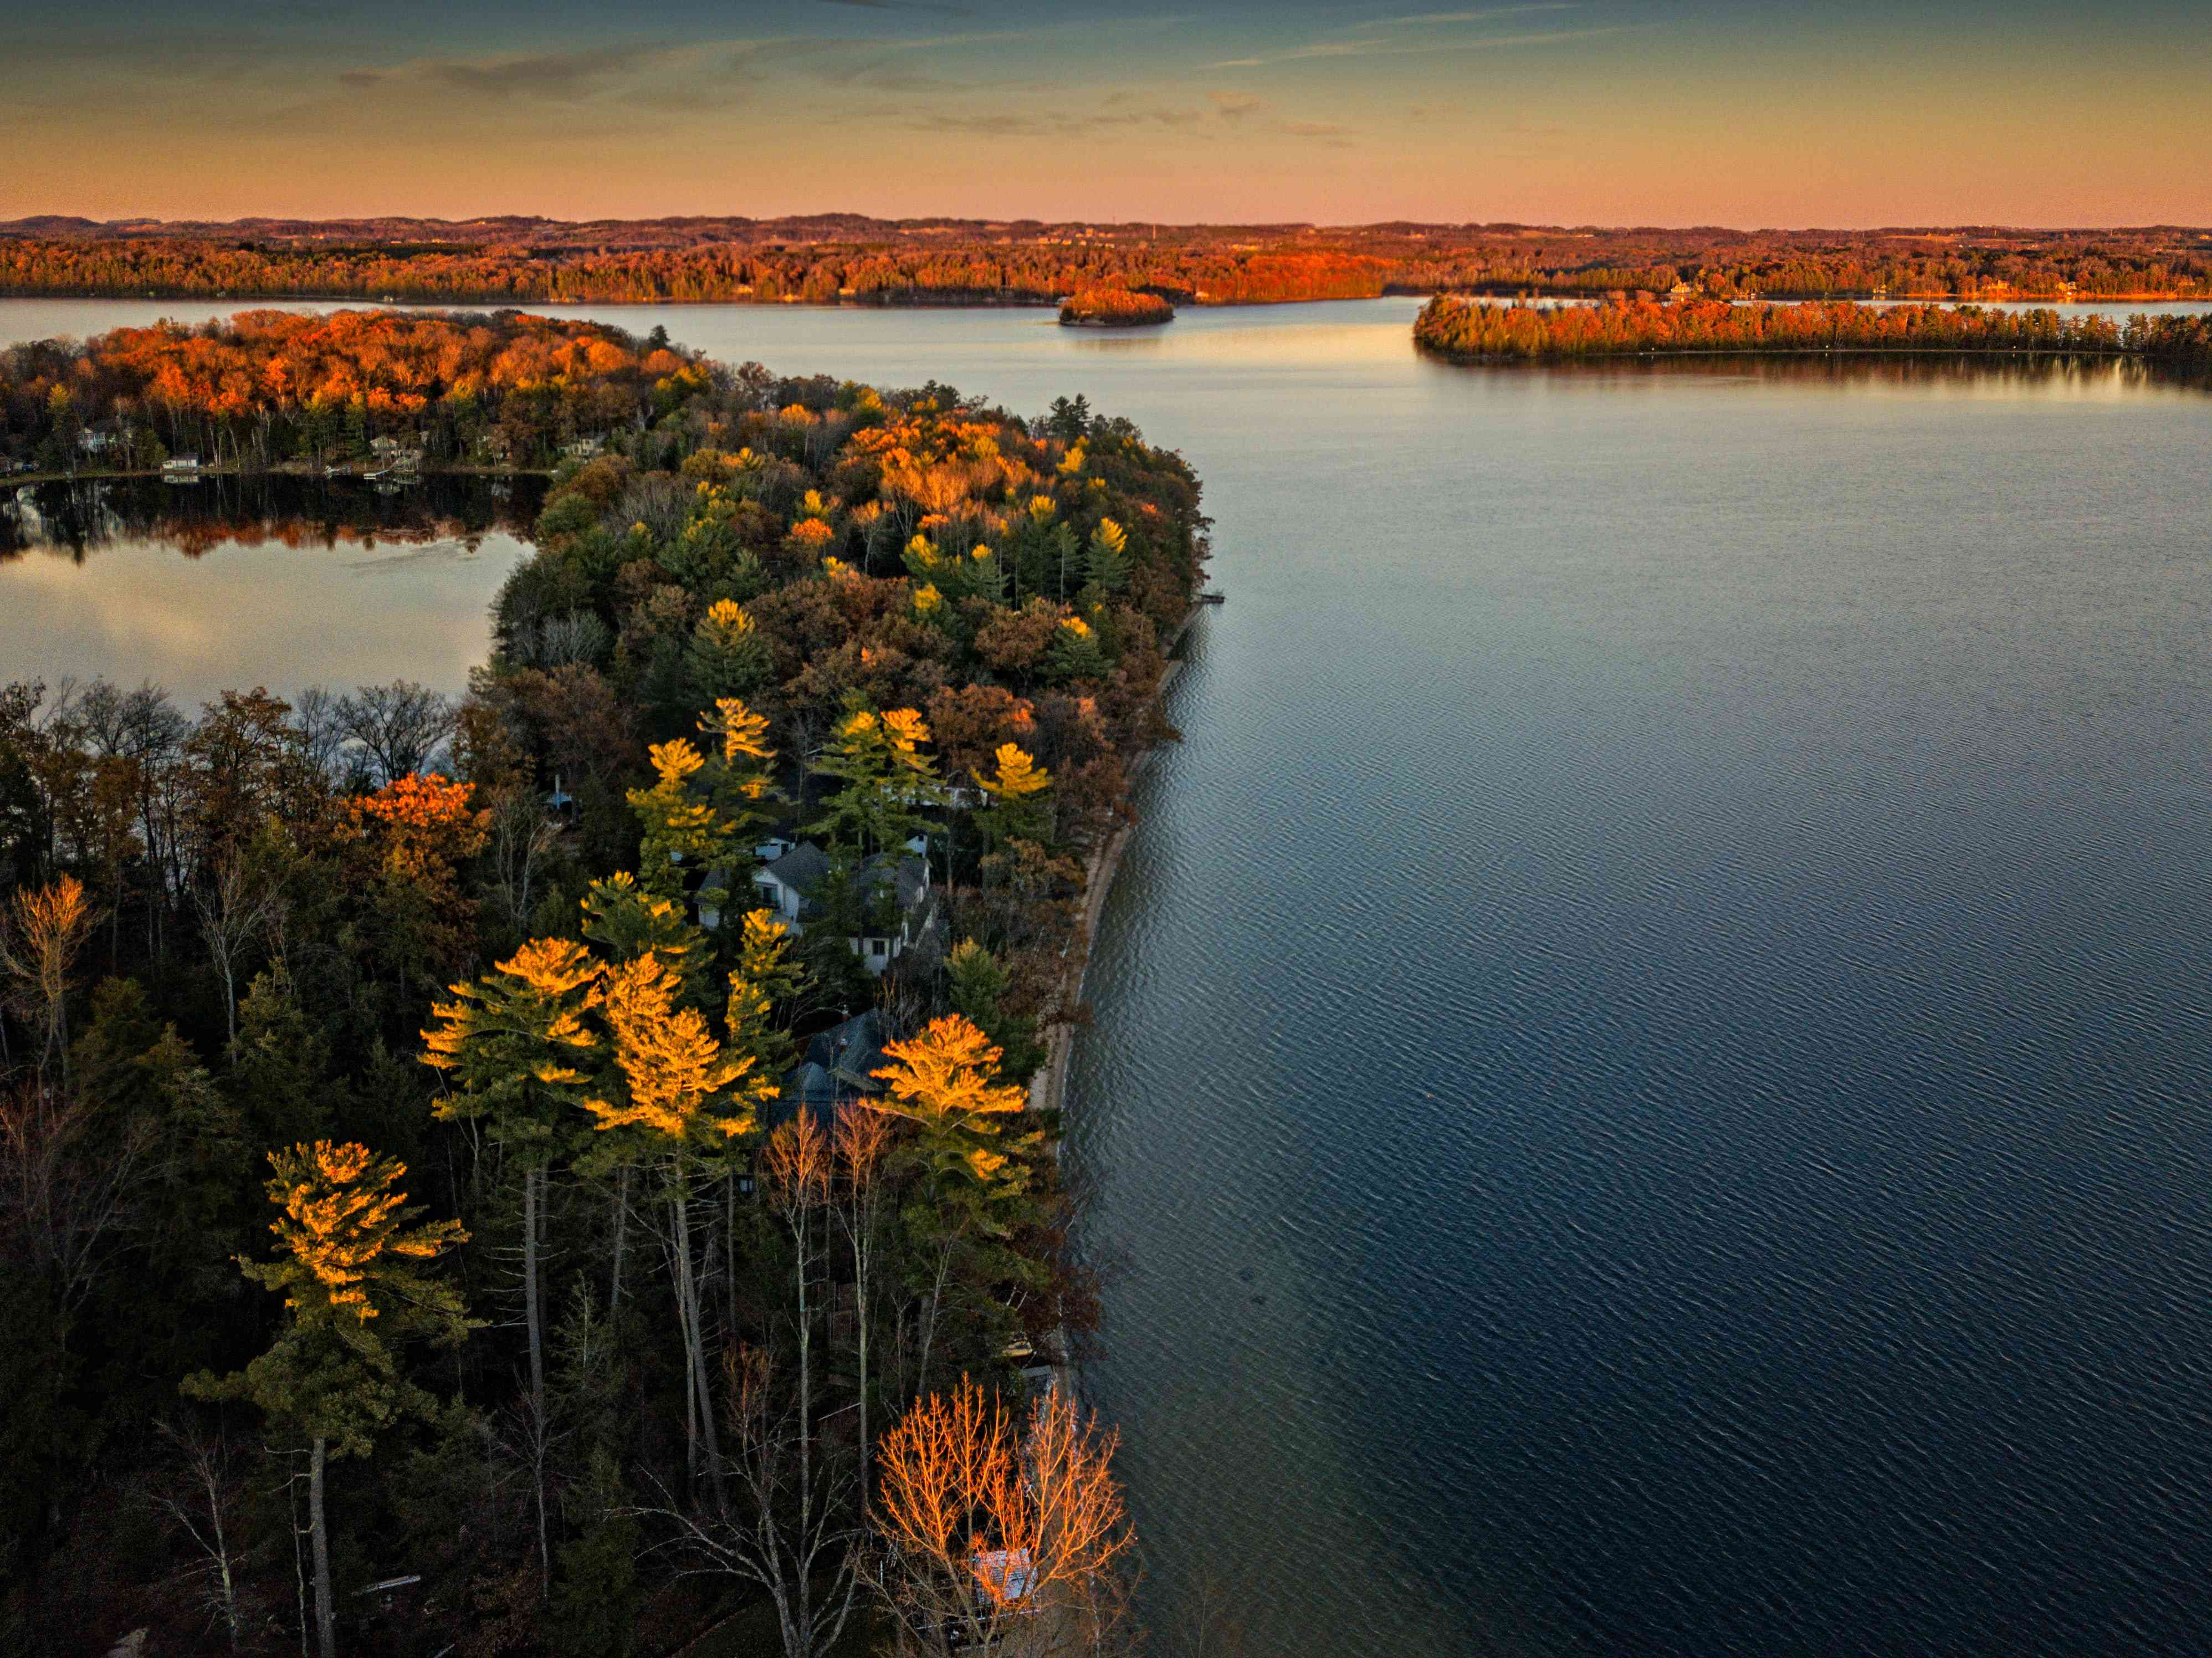 Lake Michigan surrounded by trees with colorful leaves